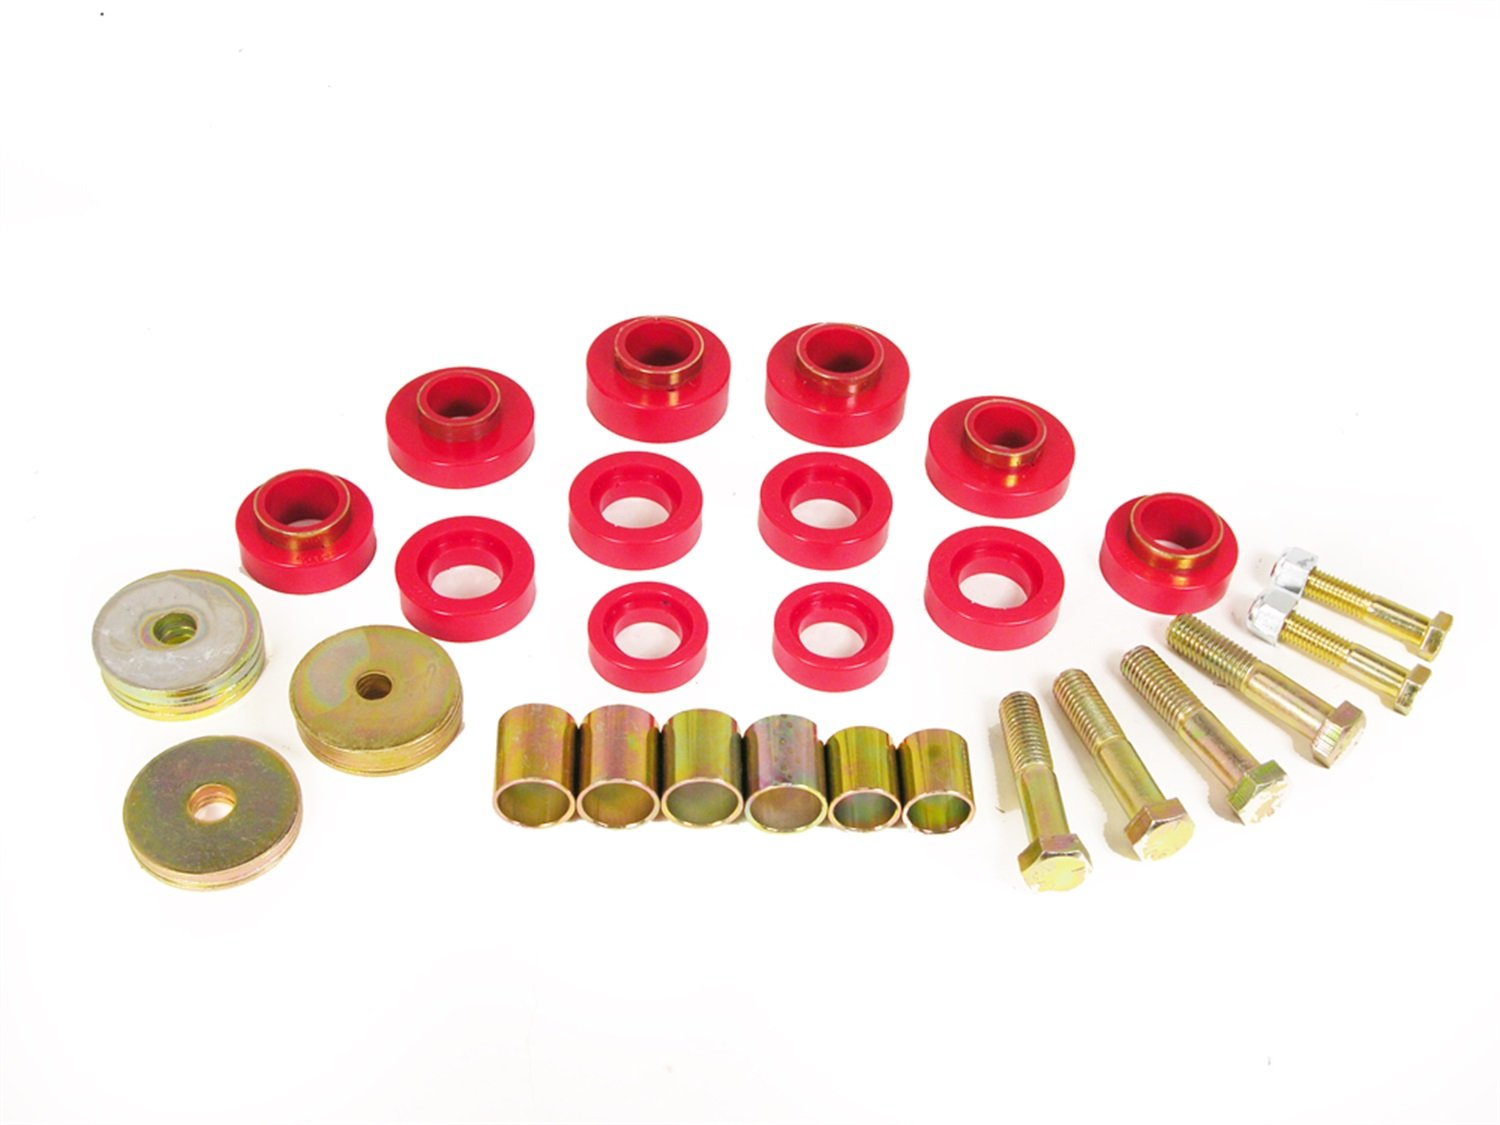 Prothane 7-139 Red Body Mount Kit with Hardware by Prothane